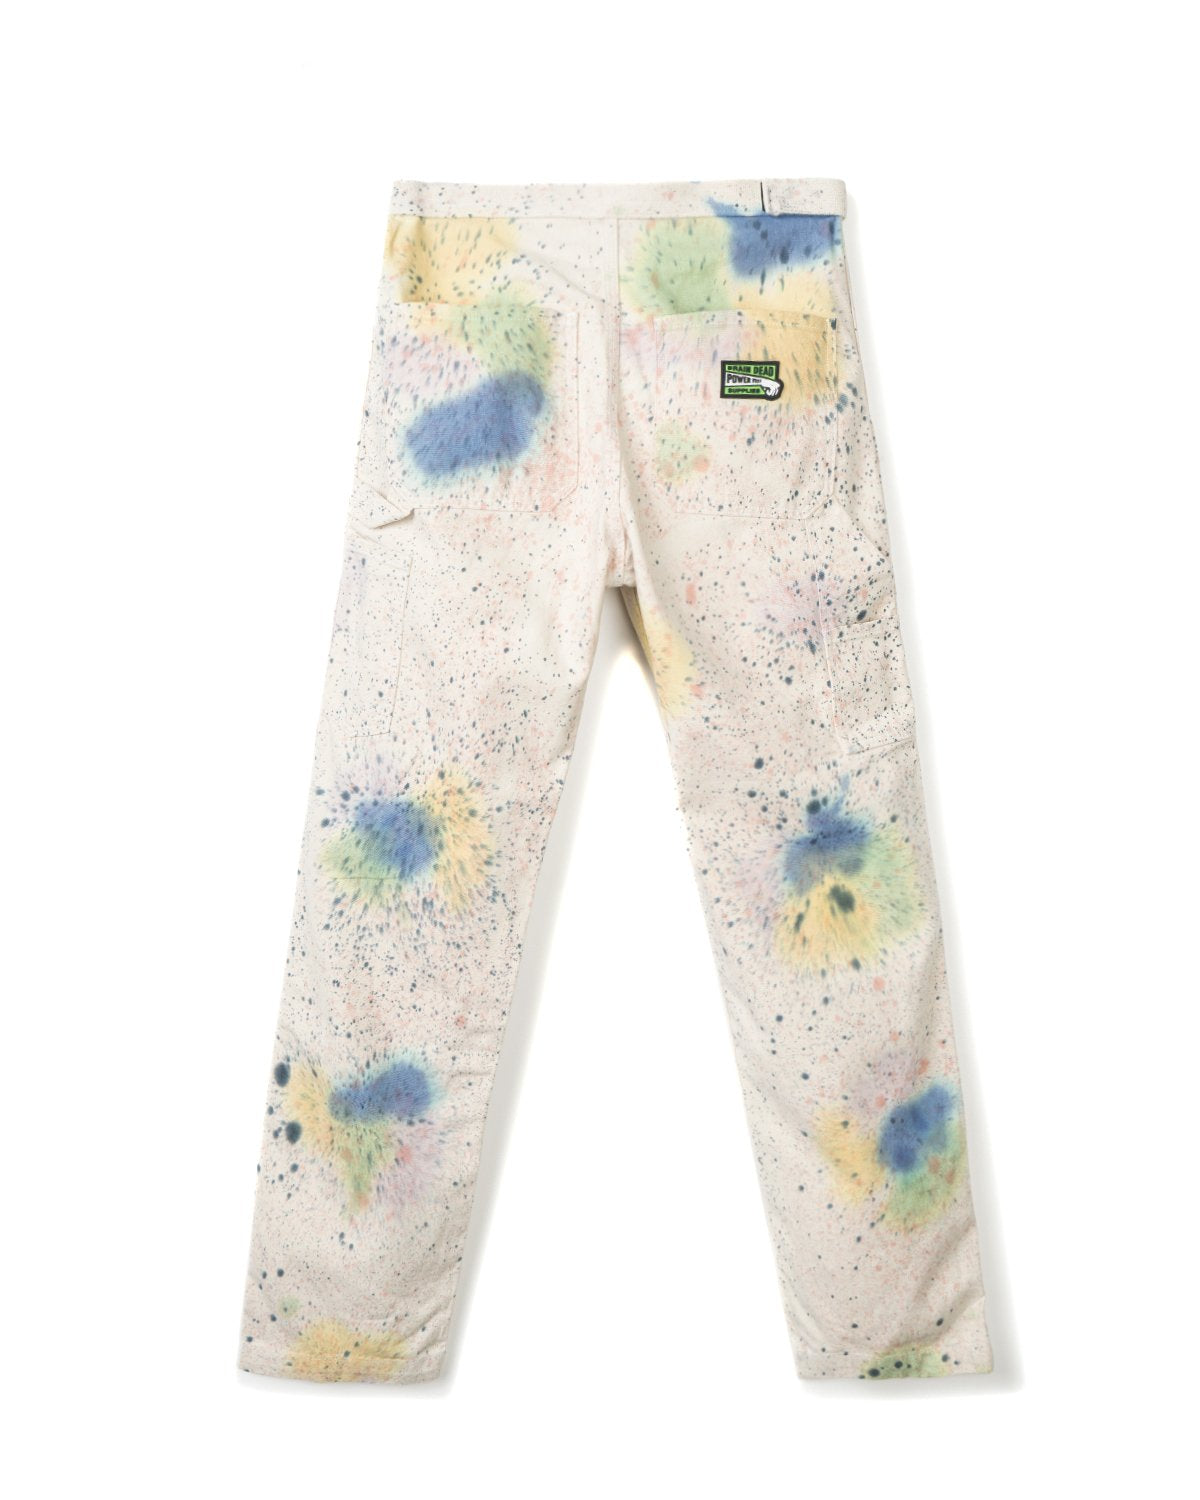 Hard/Software Velcro Carpenter Pant - Hand Splatter Dye / Washed back